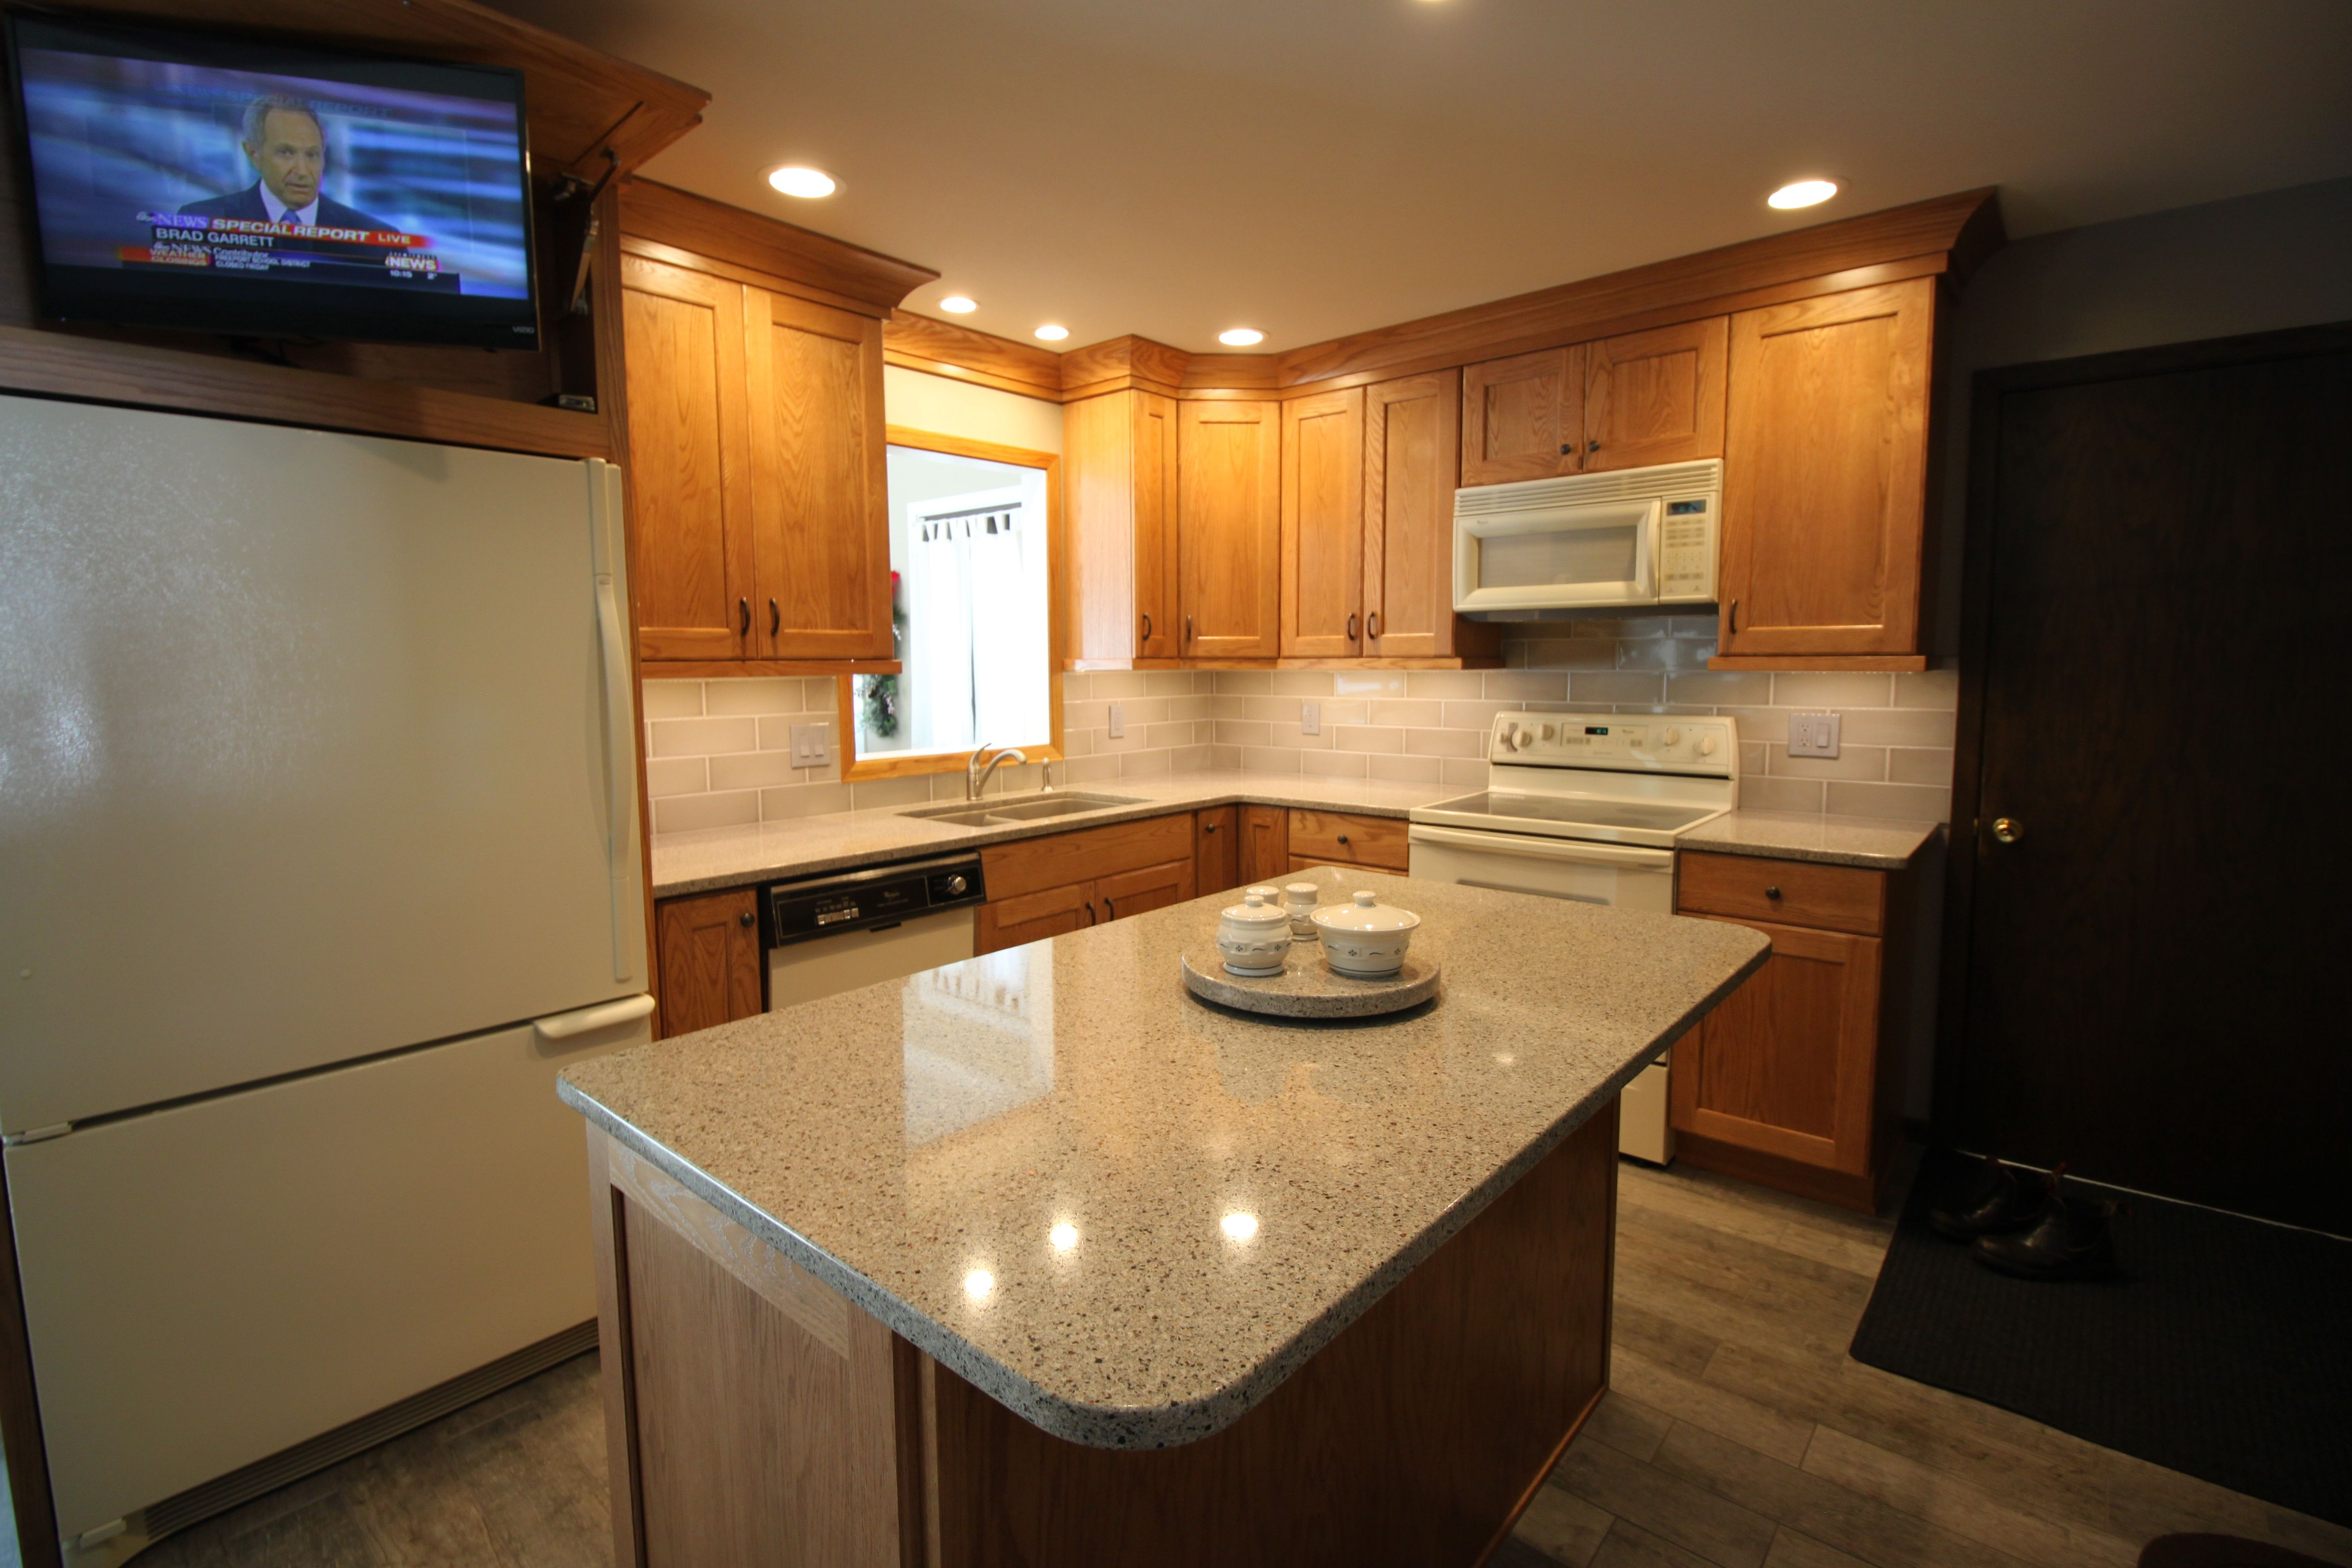 Pin on Custom Kitchen Remodel Projects | Rockford, IL Area